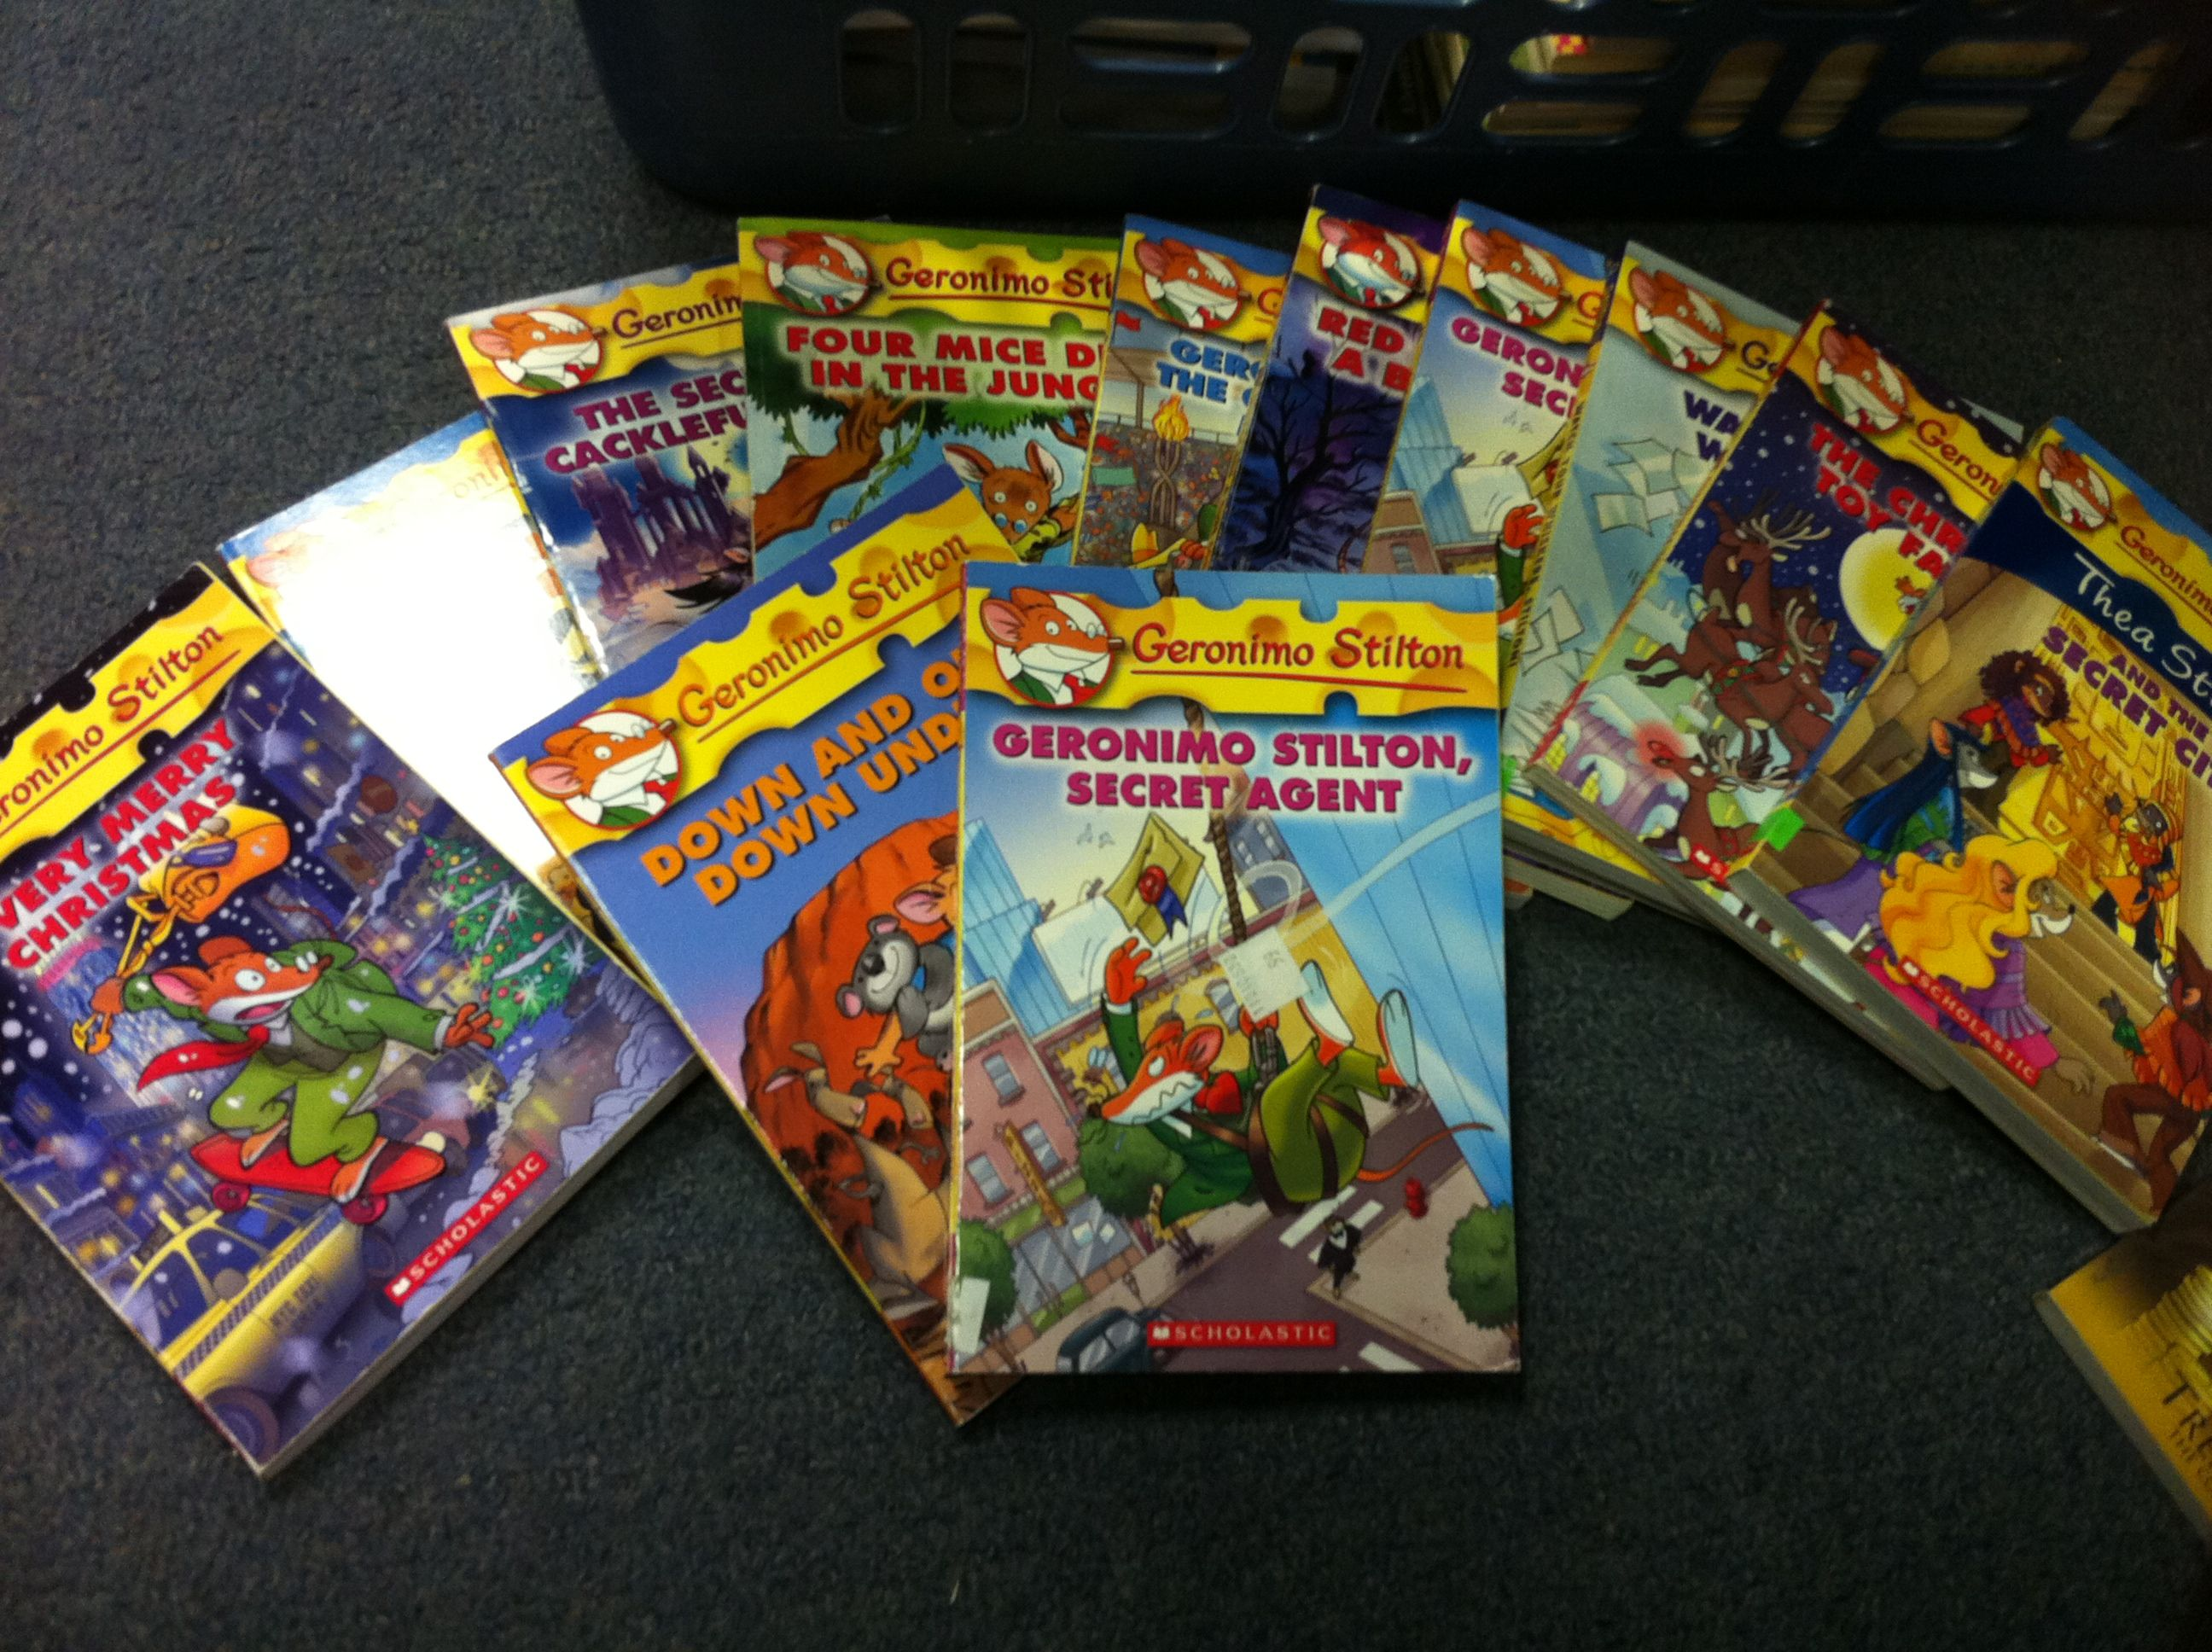 geronimo stilton books starting at 1 50 at once upon a child ajax